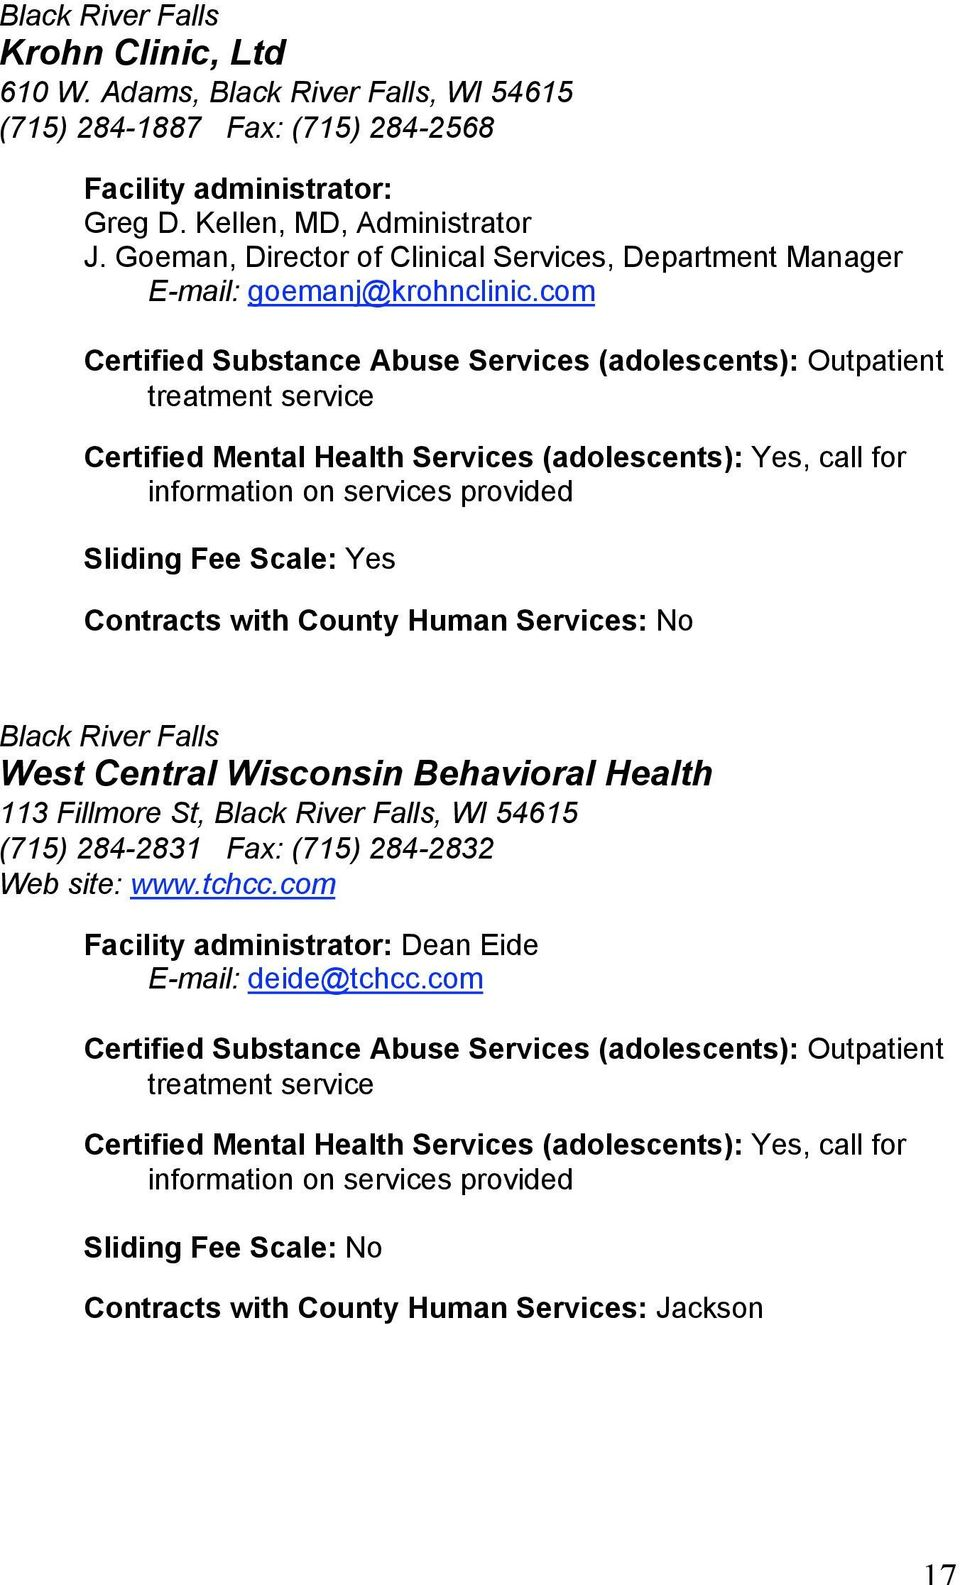 com Certified Mental Health Services (adolescents): Yes, call for information on services provided Black River Falls West Central Wisconsin Behavioral Health 113 Fillmore St, Black River